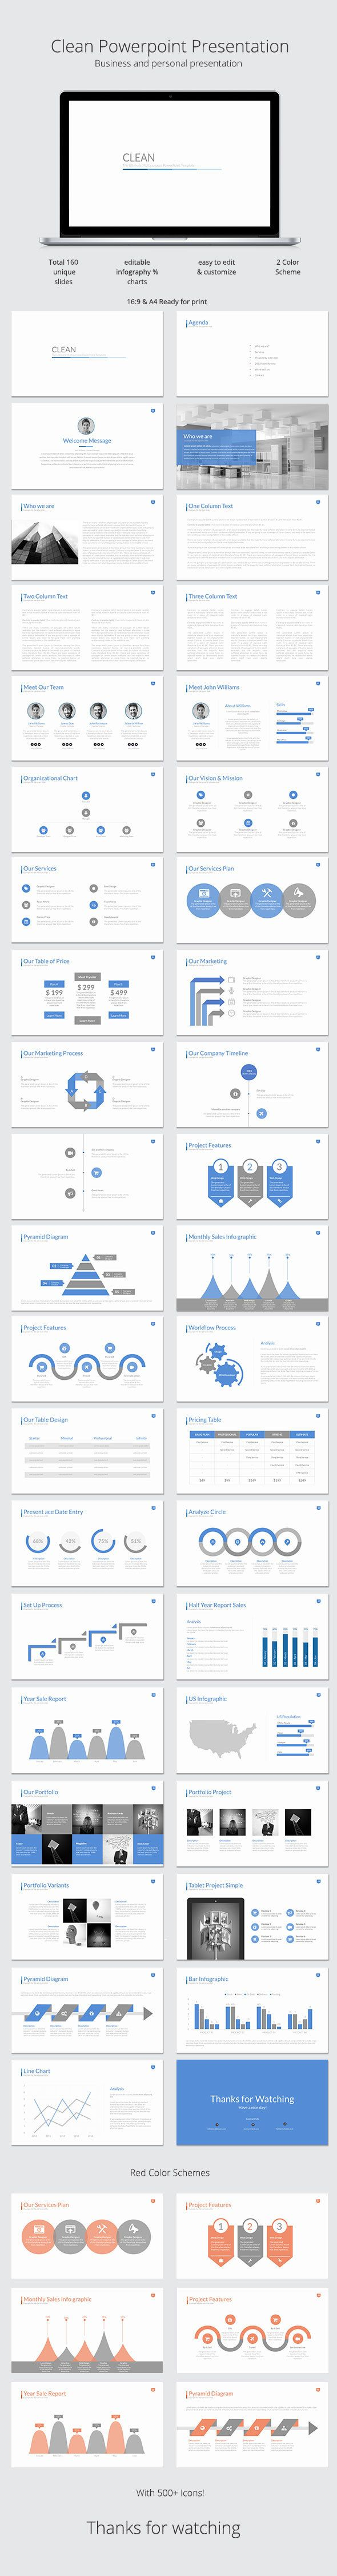 Coolmathgamesus  Sweet  Ideas About Powerpoint Presentations On Pinterest With Hot Clean Powerpoint Template With Delectable Powerpoint Photo Album Template Also Motion Powerpoint In Addition Ms Office Powerpoint Templates And Hazcom Training Powerpoint As Well As Liveweb Powerpoint Additionally Electromagnetic Spectrum Powerpoint From Pinterestcom With Coolmathgamesus  Hot  Ideas About Powerpoint Presentations On Pinterest With Delectable Clean Powerpoint Template And Sweet Powerpoint Photo Album Template Also Motion Powerpoint In Addition Ms Office Powerpoint Templates From Pinterestcom